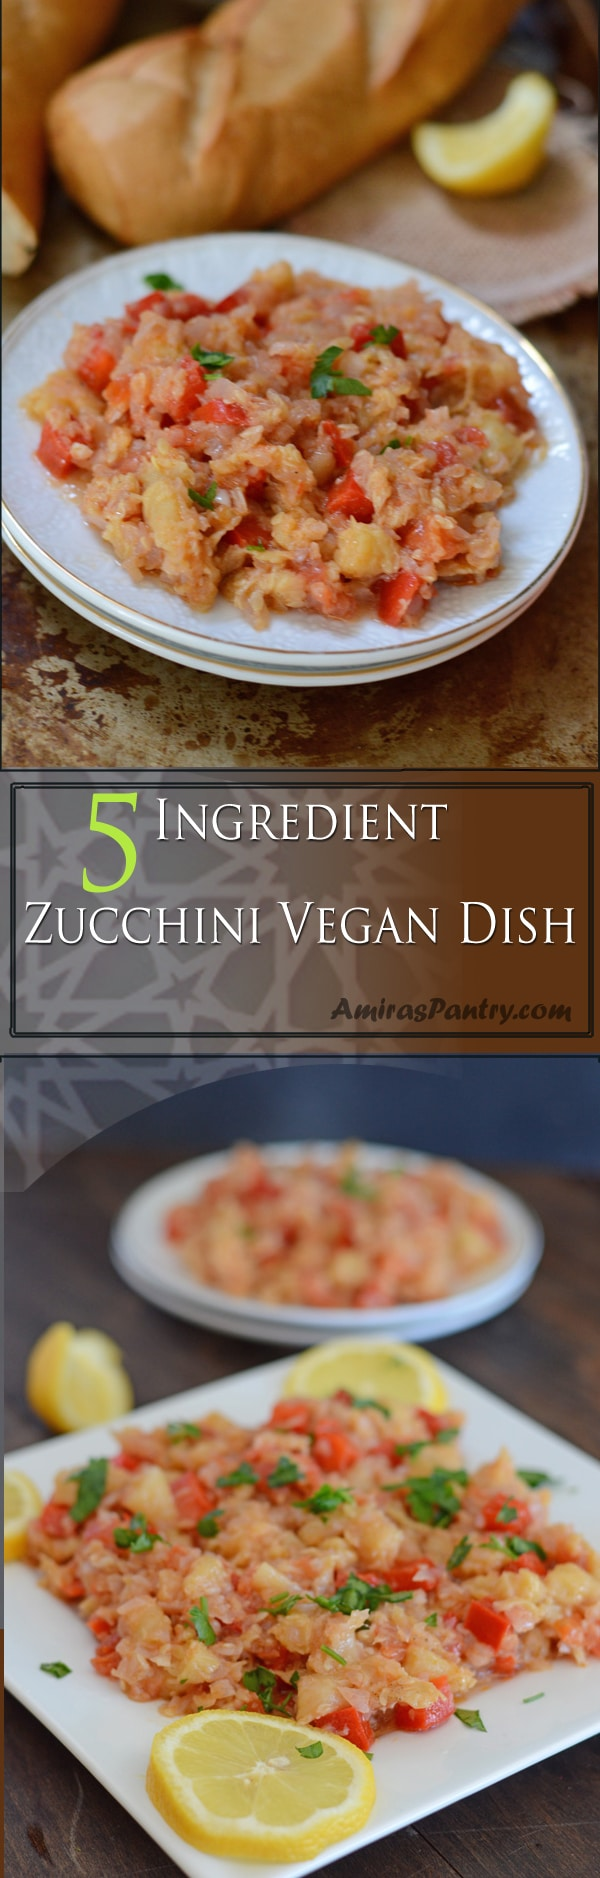 Have you ever wondered what to do with zucchini insides? you can make zucchini fritters, zucchini pancakes, zucchini muffins or how about this simple veggie side dish idea?